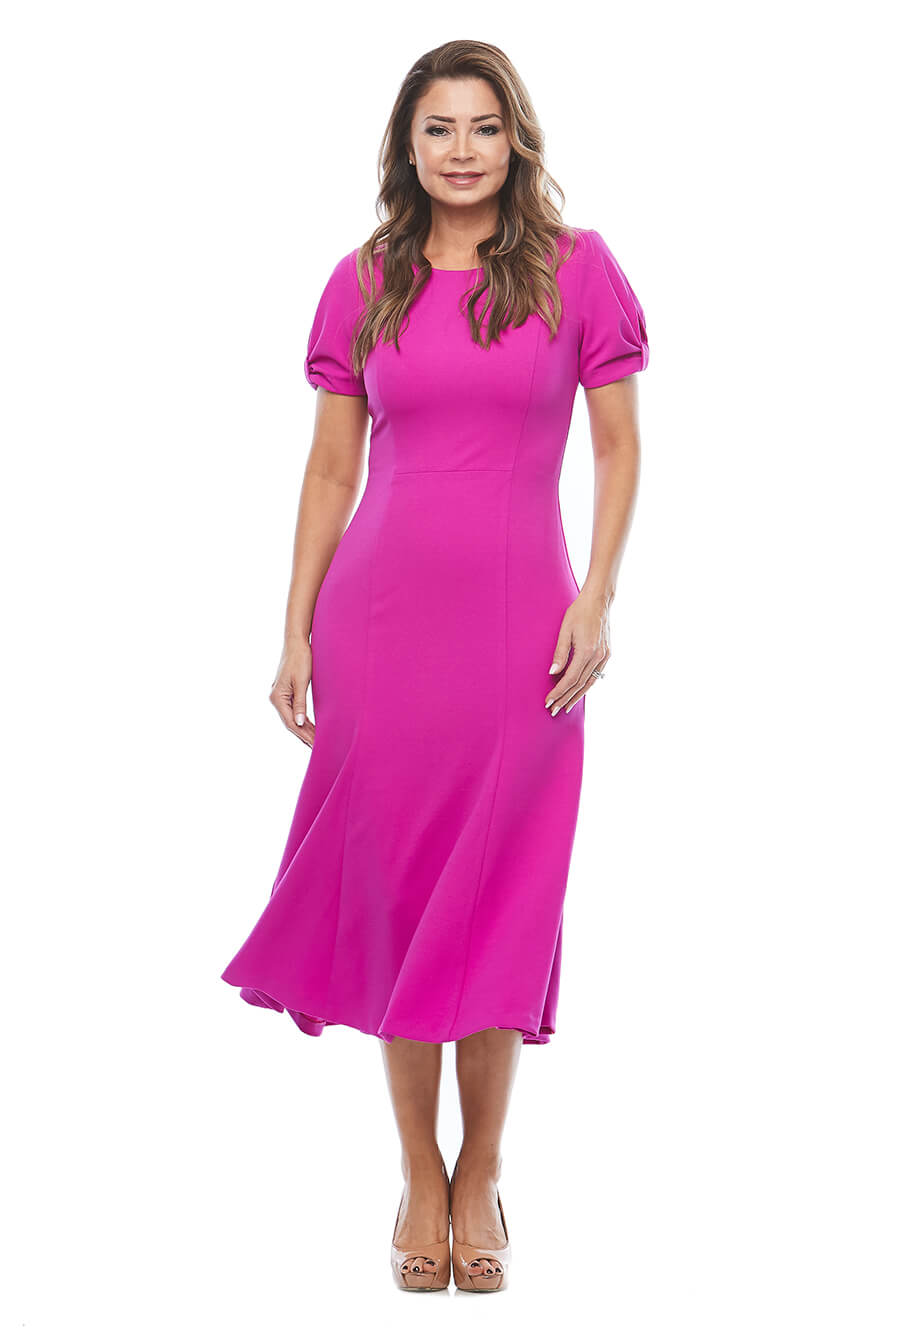 Stretch crepe dress with gathered short sleeves